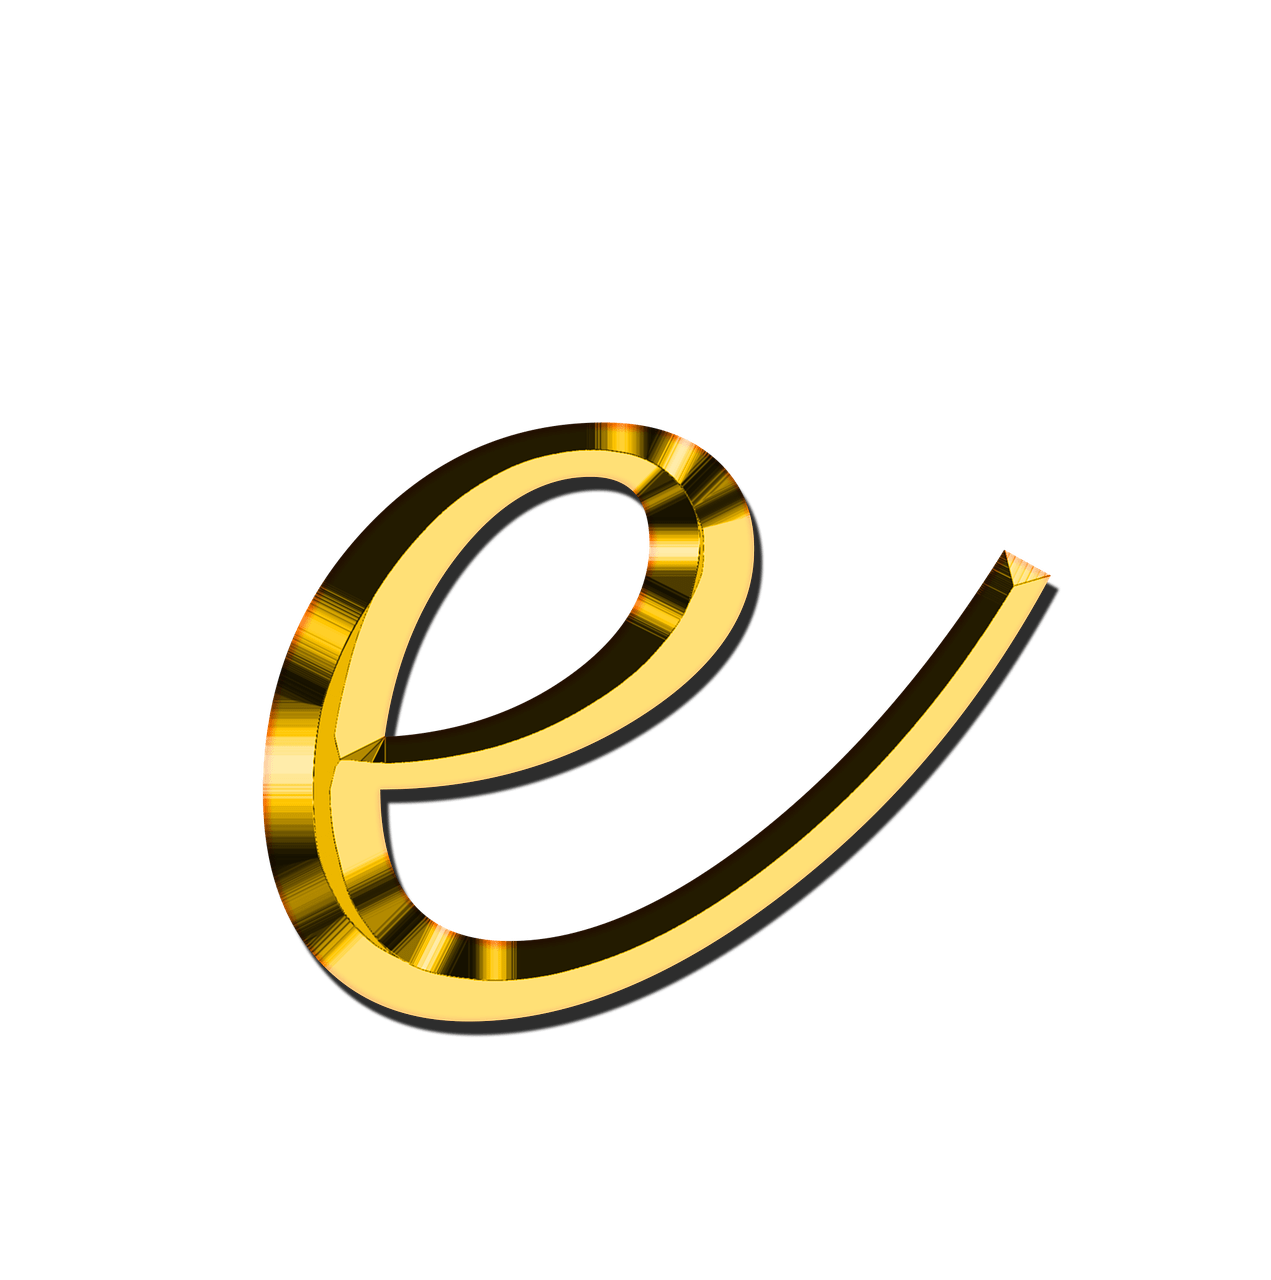 E clipart yellow letter. Small transparent png stickpng